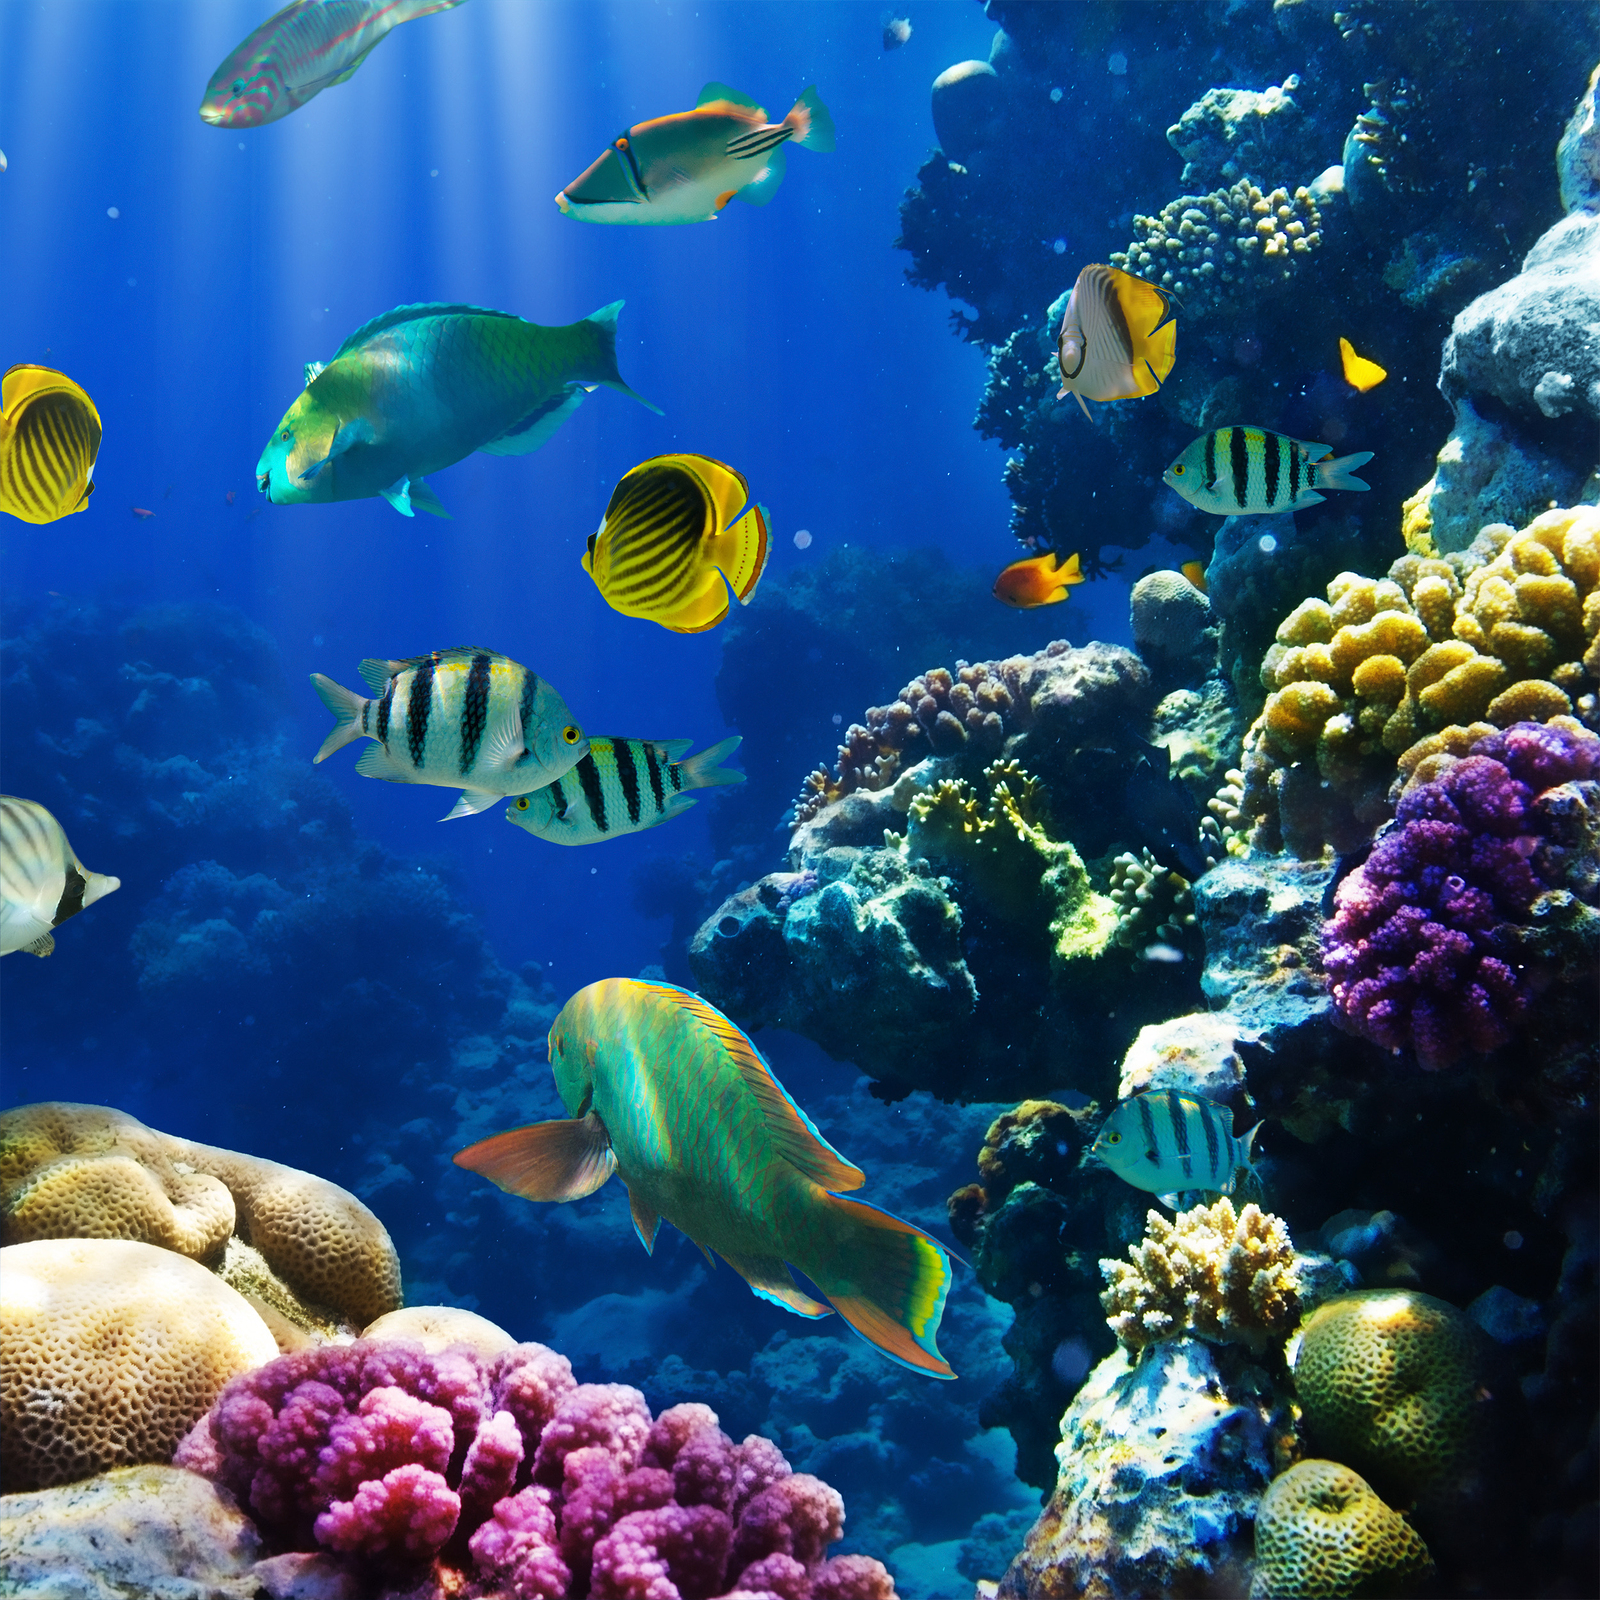 Fiji has over one thousand fish species and over 200 hard and soft coral varieties for your diving pleasure